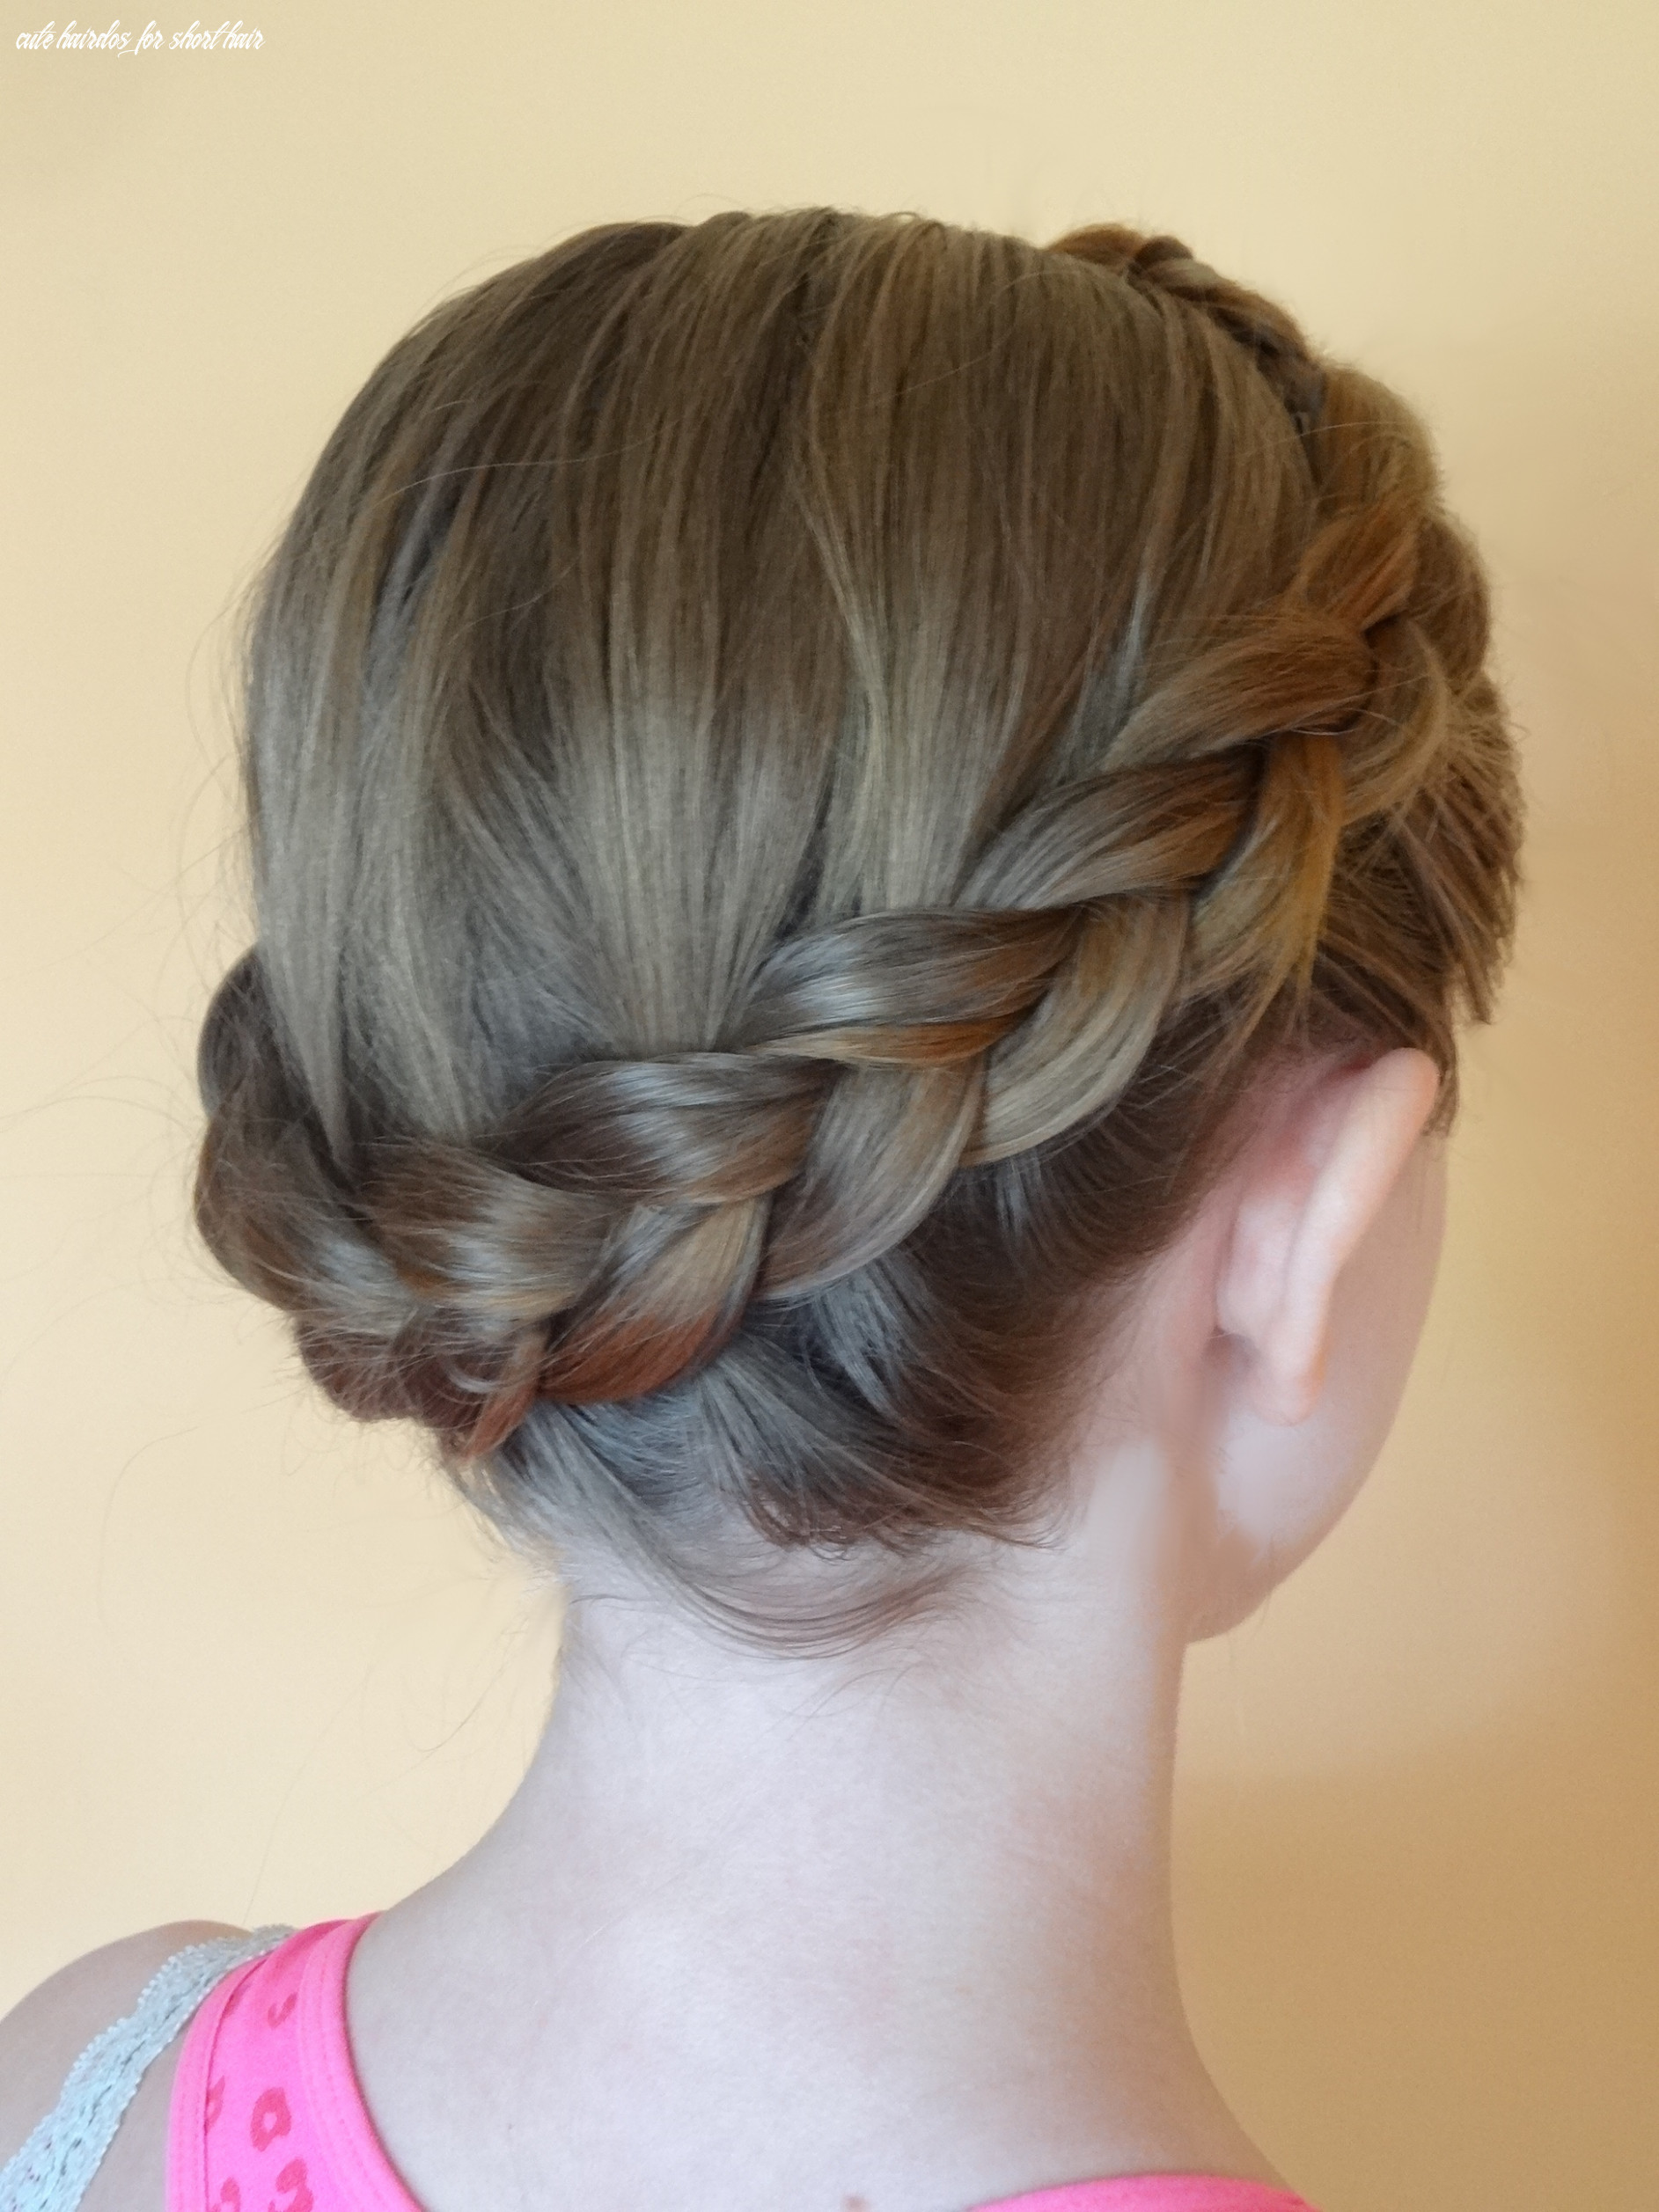 How To Braid Short Hair - 10 Fast And Easy Cute Hairstyles